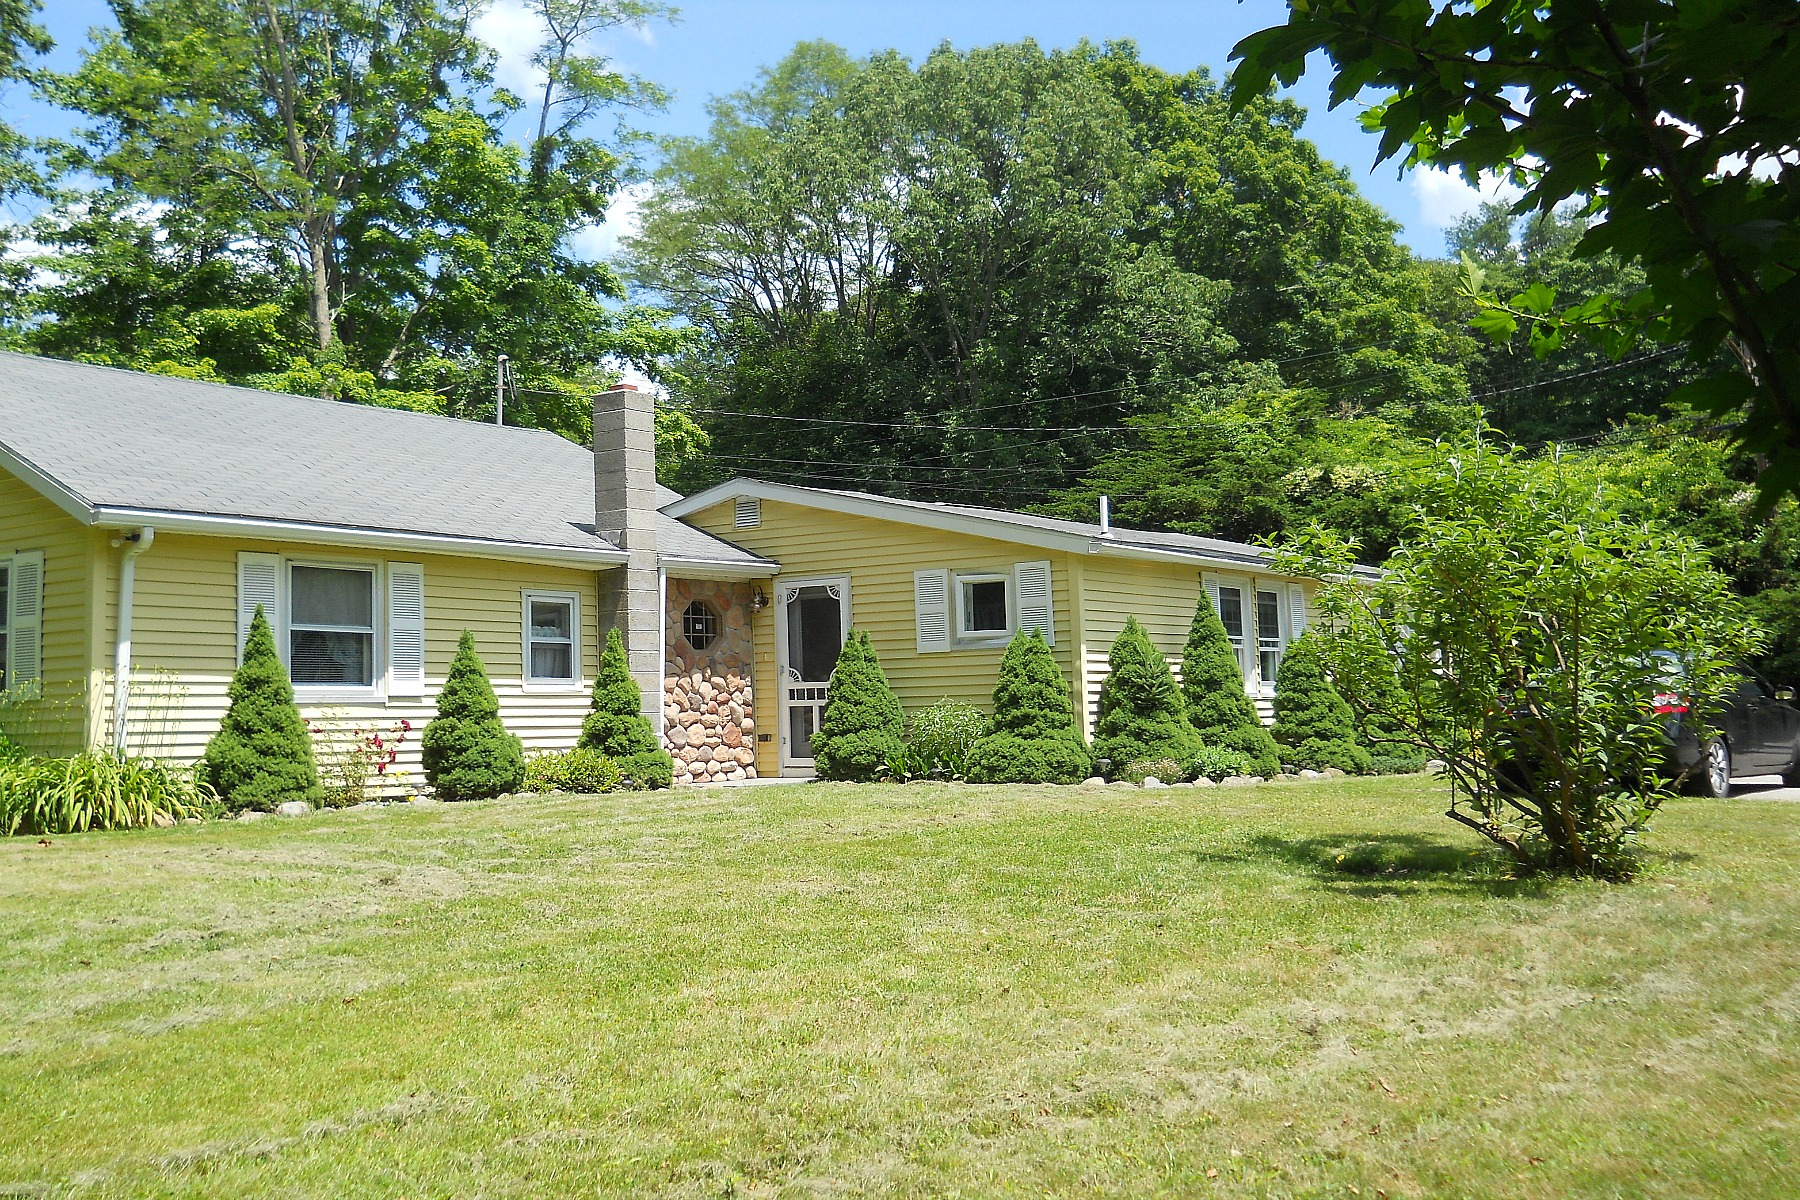 Single Family Home for Sale at Charming 1920 Ranch 172 Bushy Hill Rd Deep River, Connecticut 06417 United States